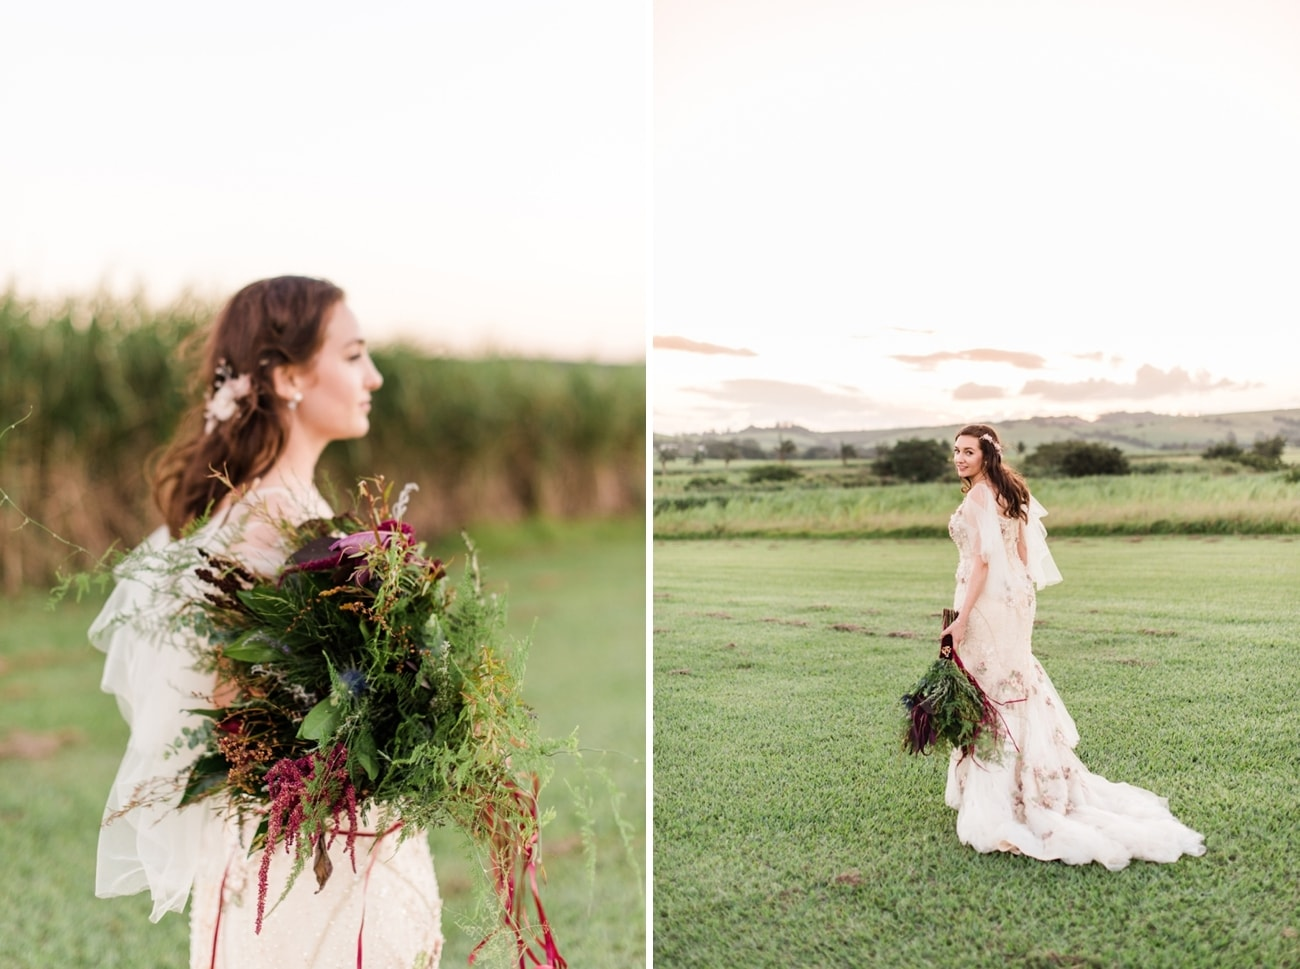 Bride with Herb Bouquet | Image: Roxanne Davison